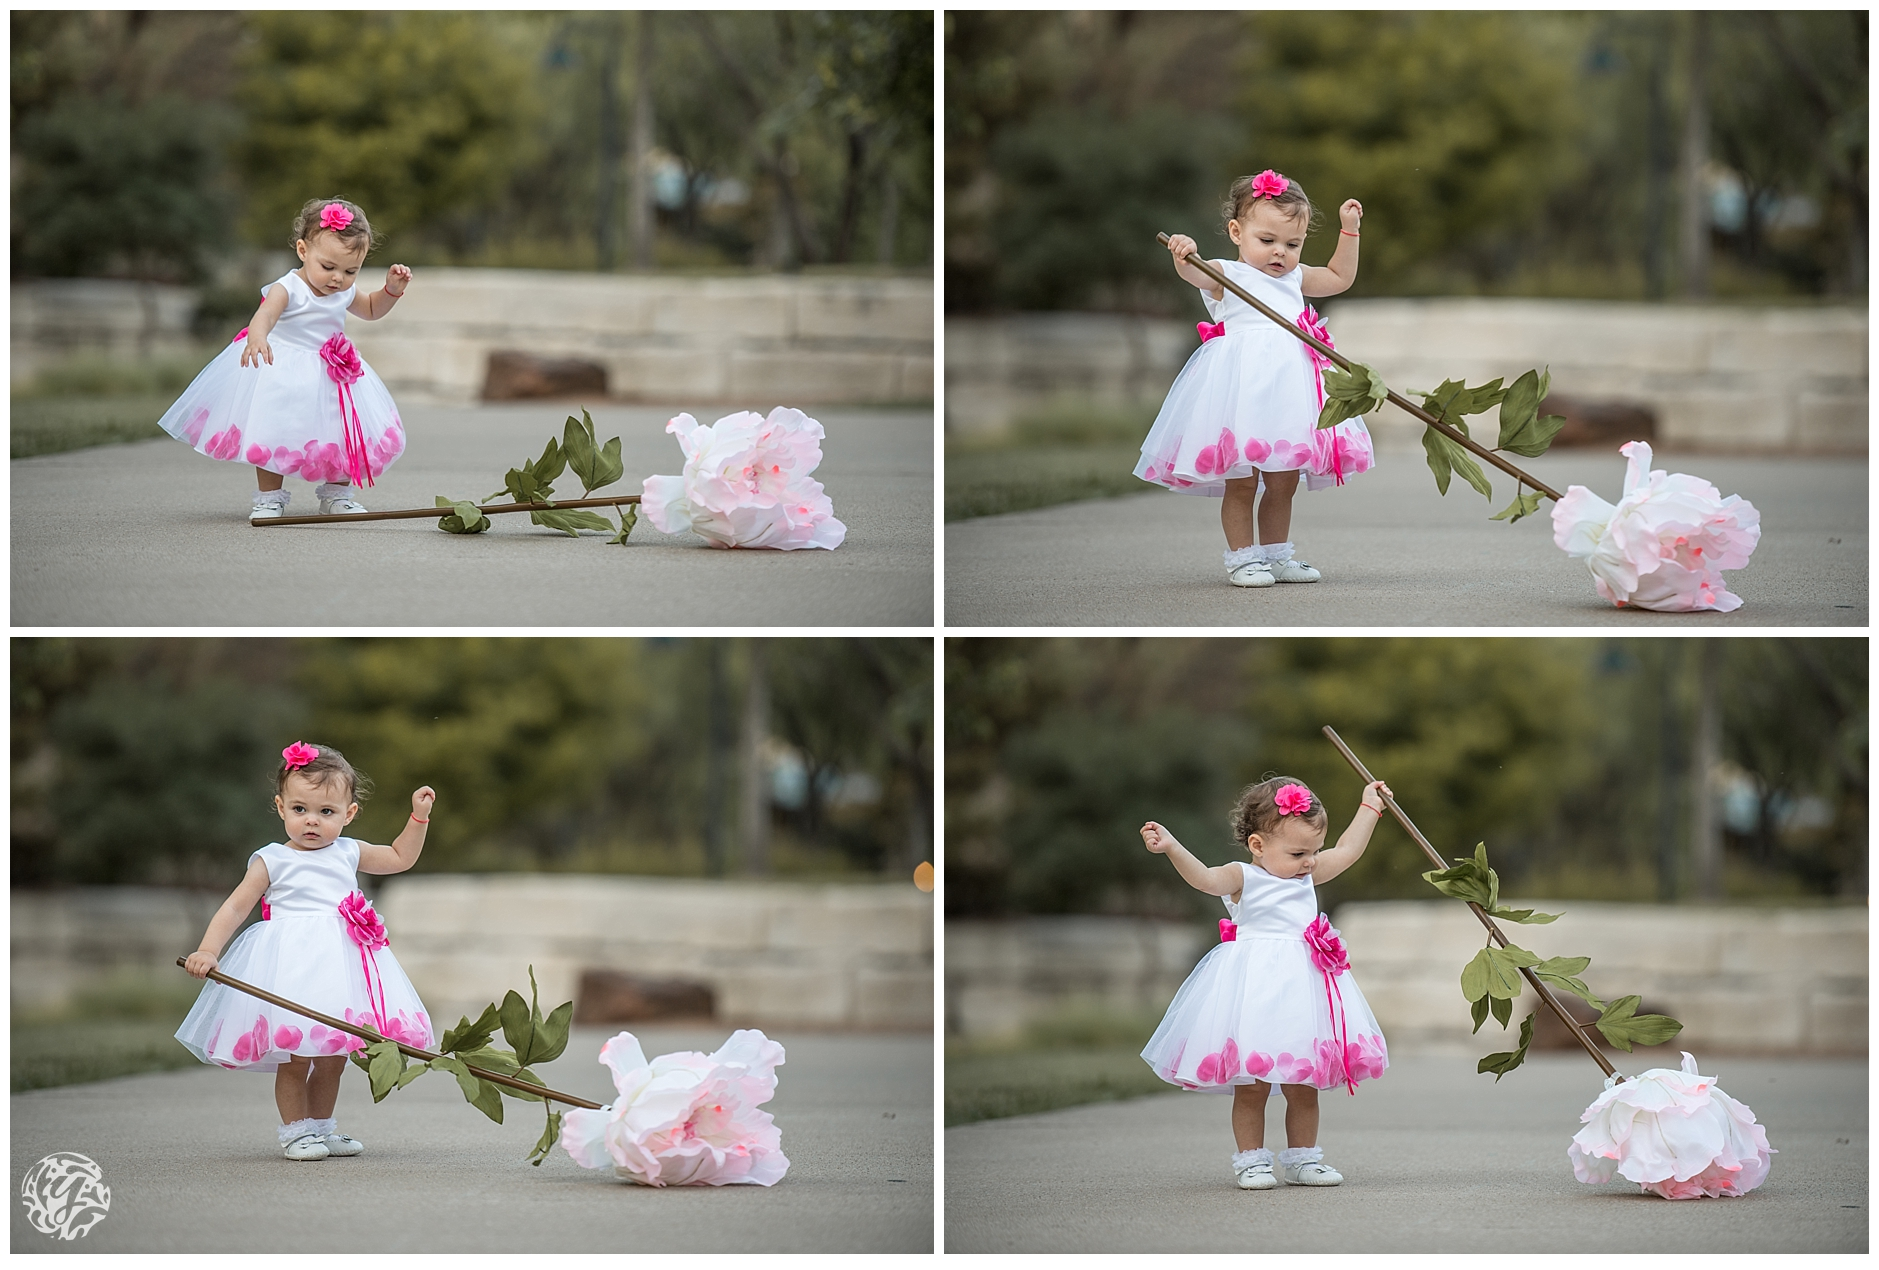 1 year photo session - girl with flower.jpg